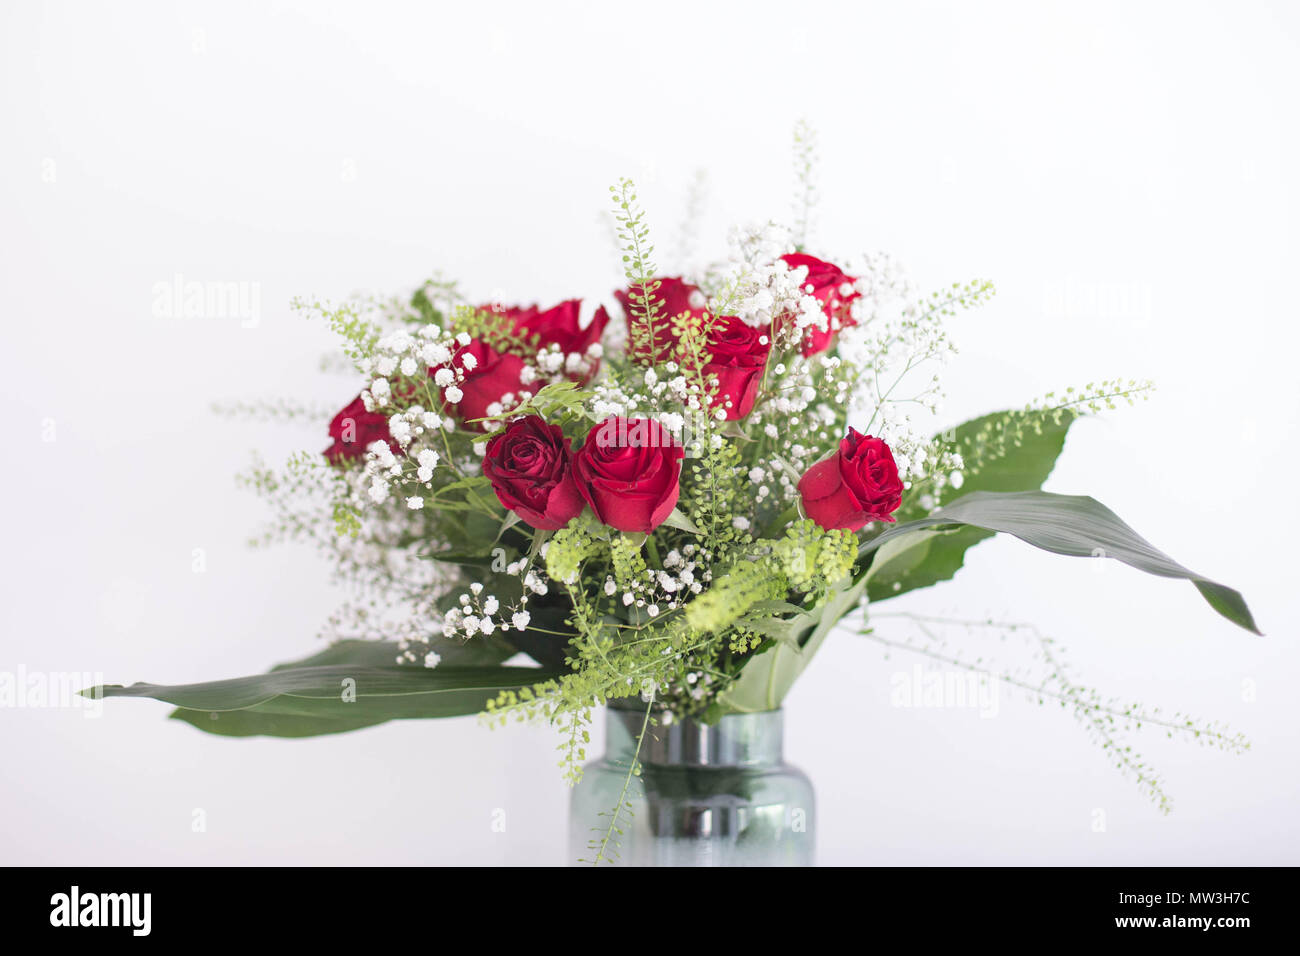 Beautiful Roses Bouquet In A Vase With Green Leaves And White